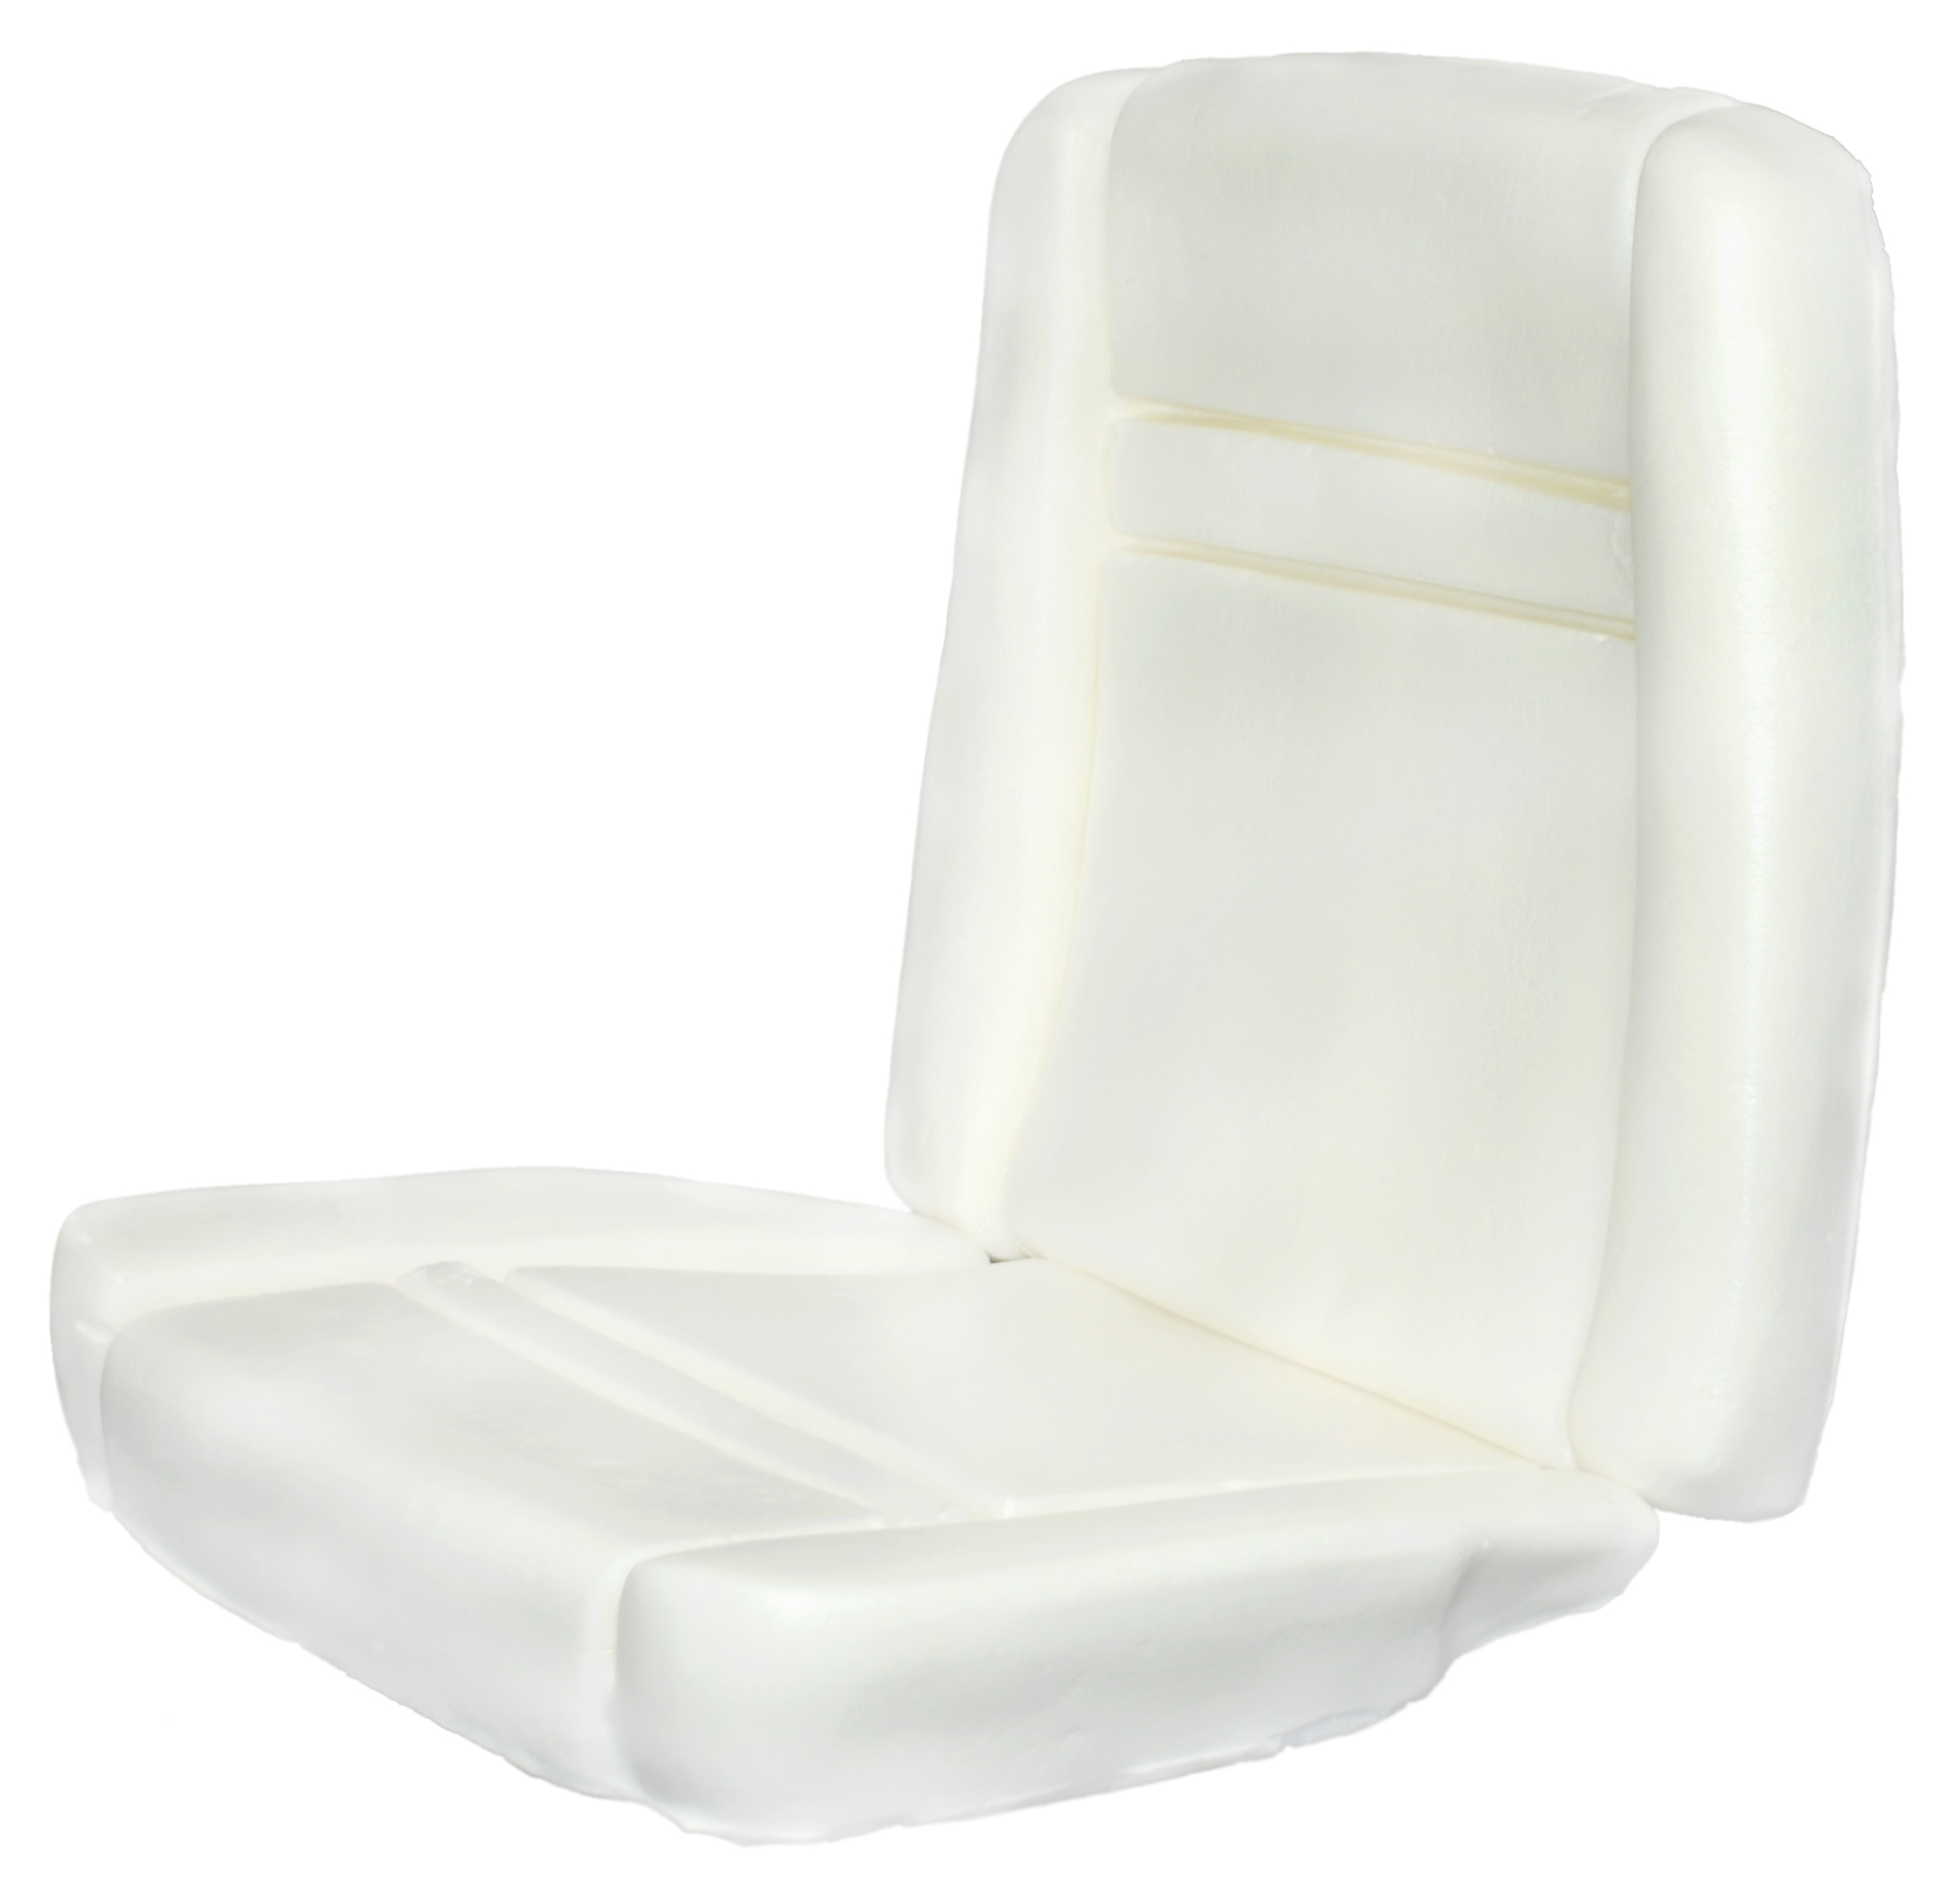 1968 Cougar XR7 Bucket Seat Foam